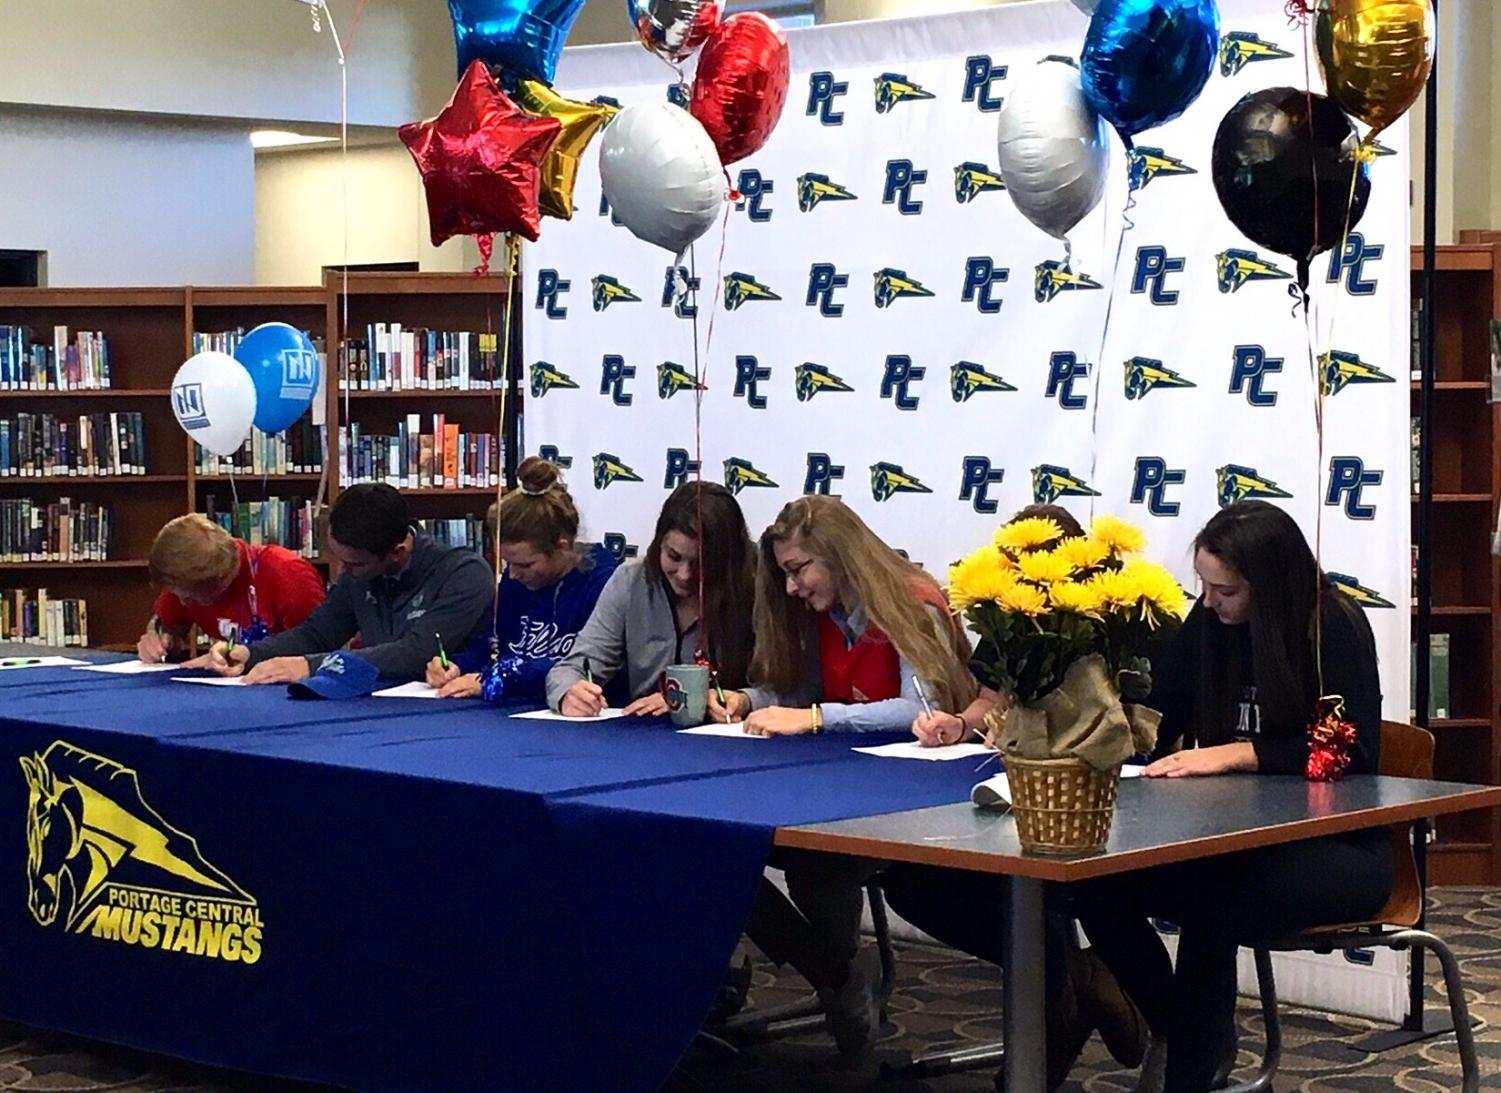 Seniors Carson Hodge, Nick Kolberg, Josie Muffley, Mackenzie Zook, Hannah Corwin, Trinity Cumo, Emma Engle, and Kylee Taylor sign side by side at the table in confirmation to play their sport at each of their respective future schools.